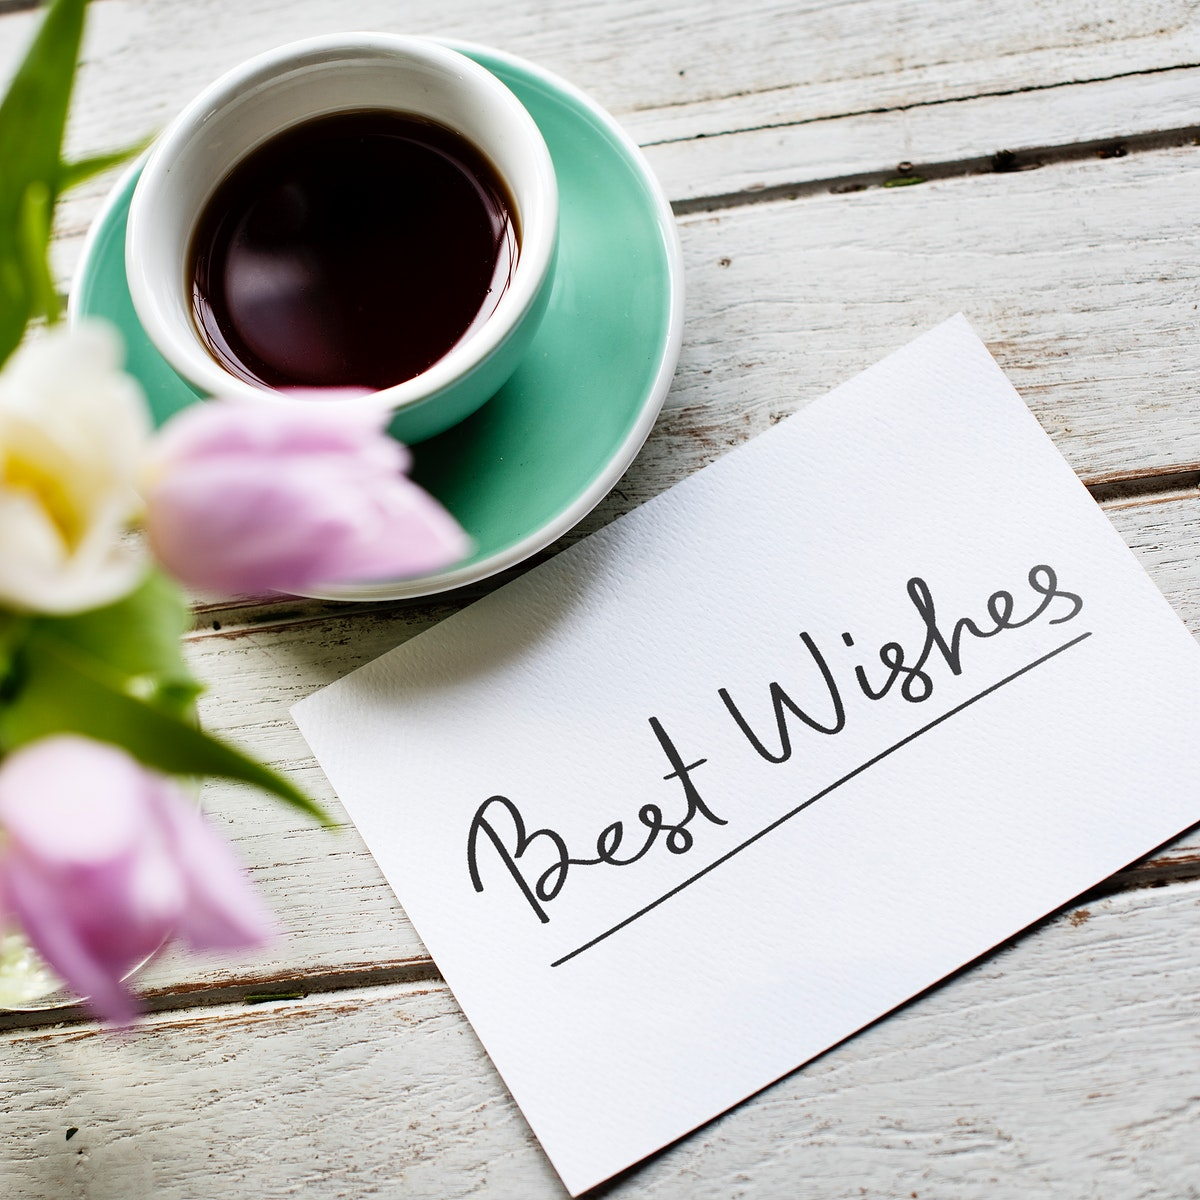 Best Wishes card and a cup of coffee